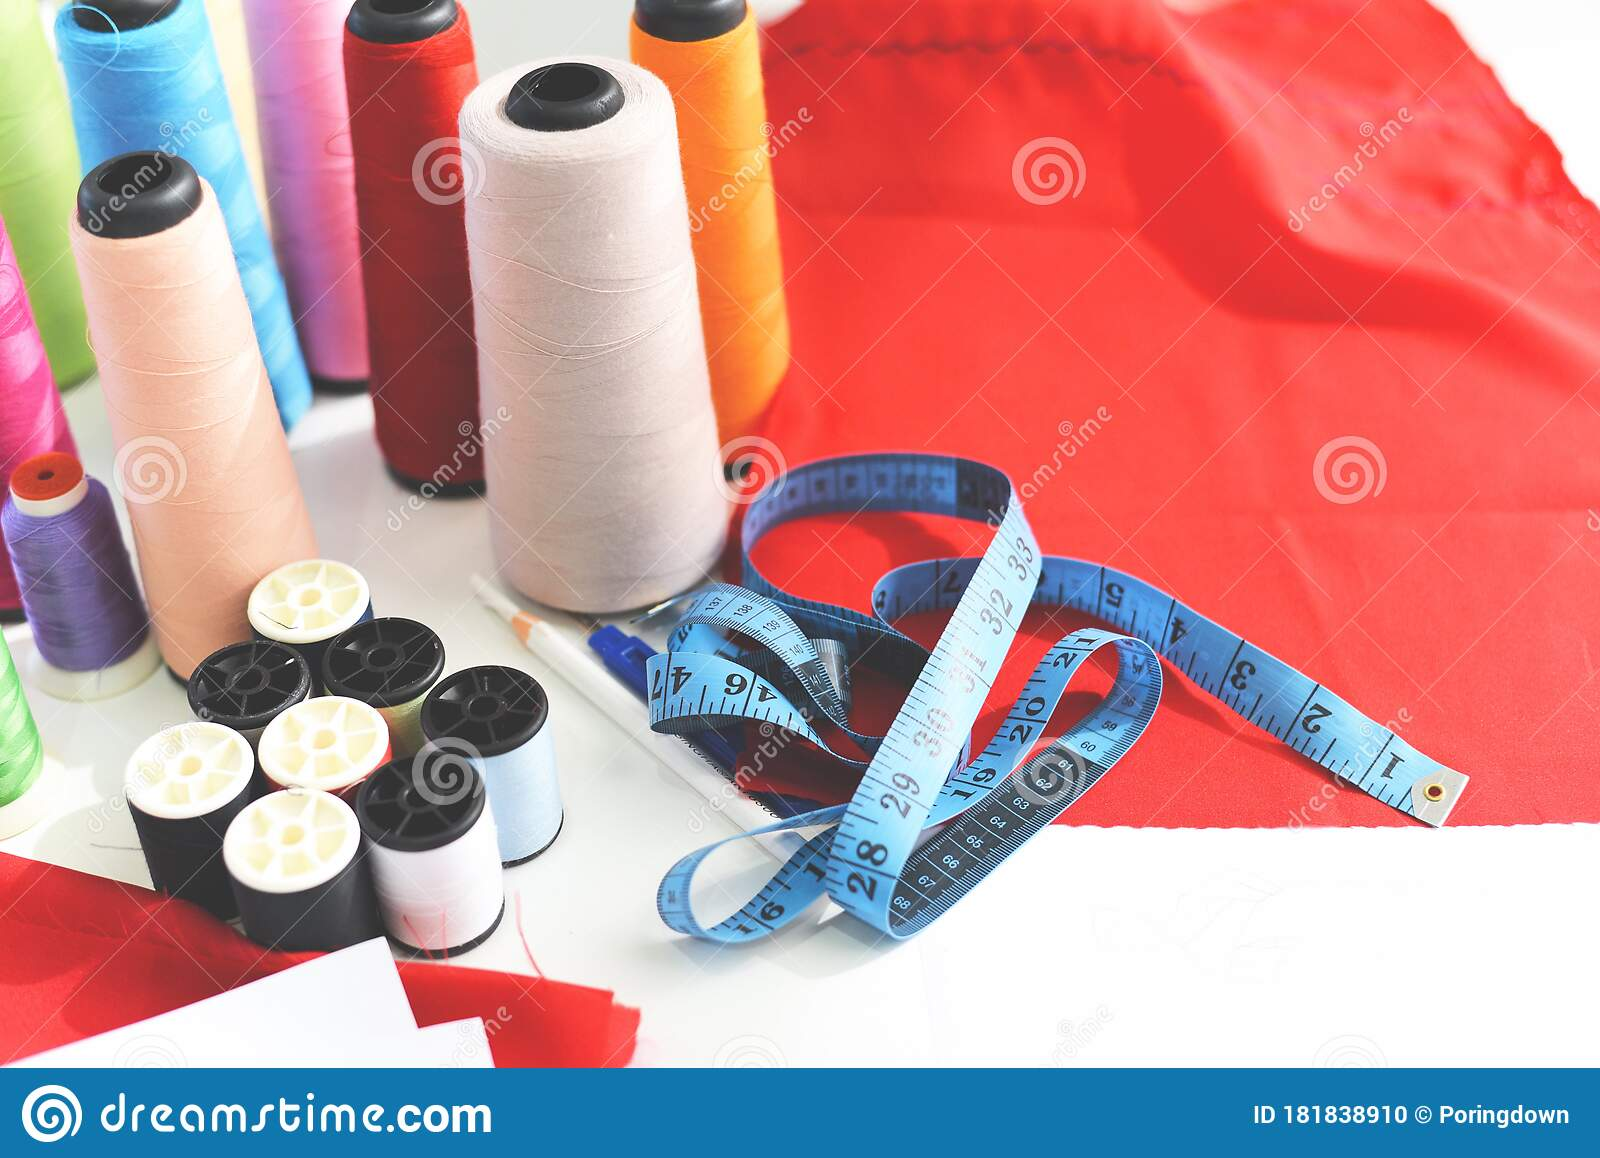 Tools Handicraft Measuring Tape Sewing Thread And Needle Thread For Fashion Designer In Studio Textile Material Scissors Cutting Stock Photo Image Of Seam Needlework 181838910